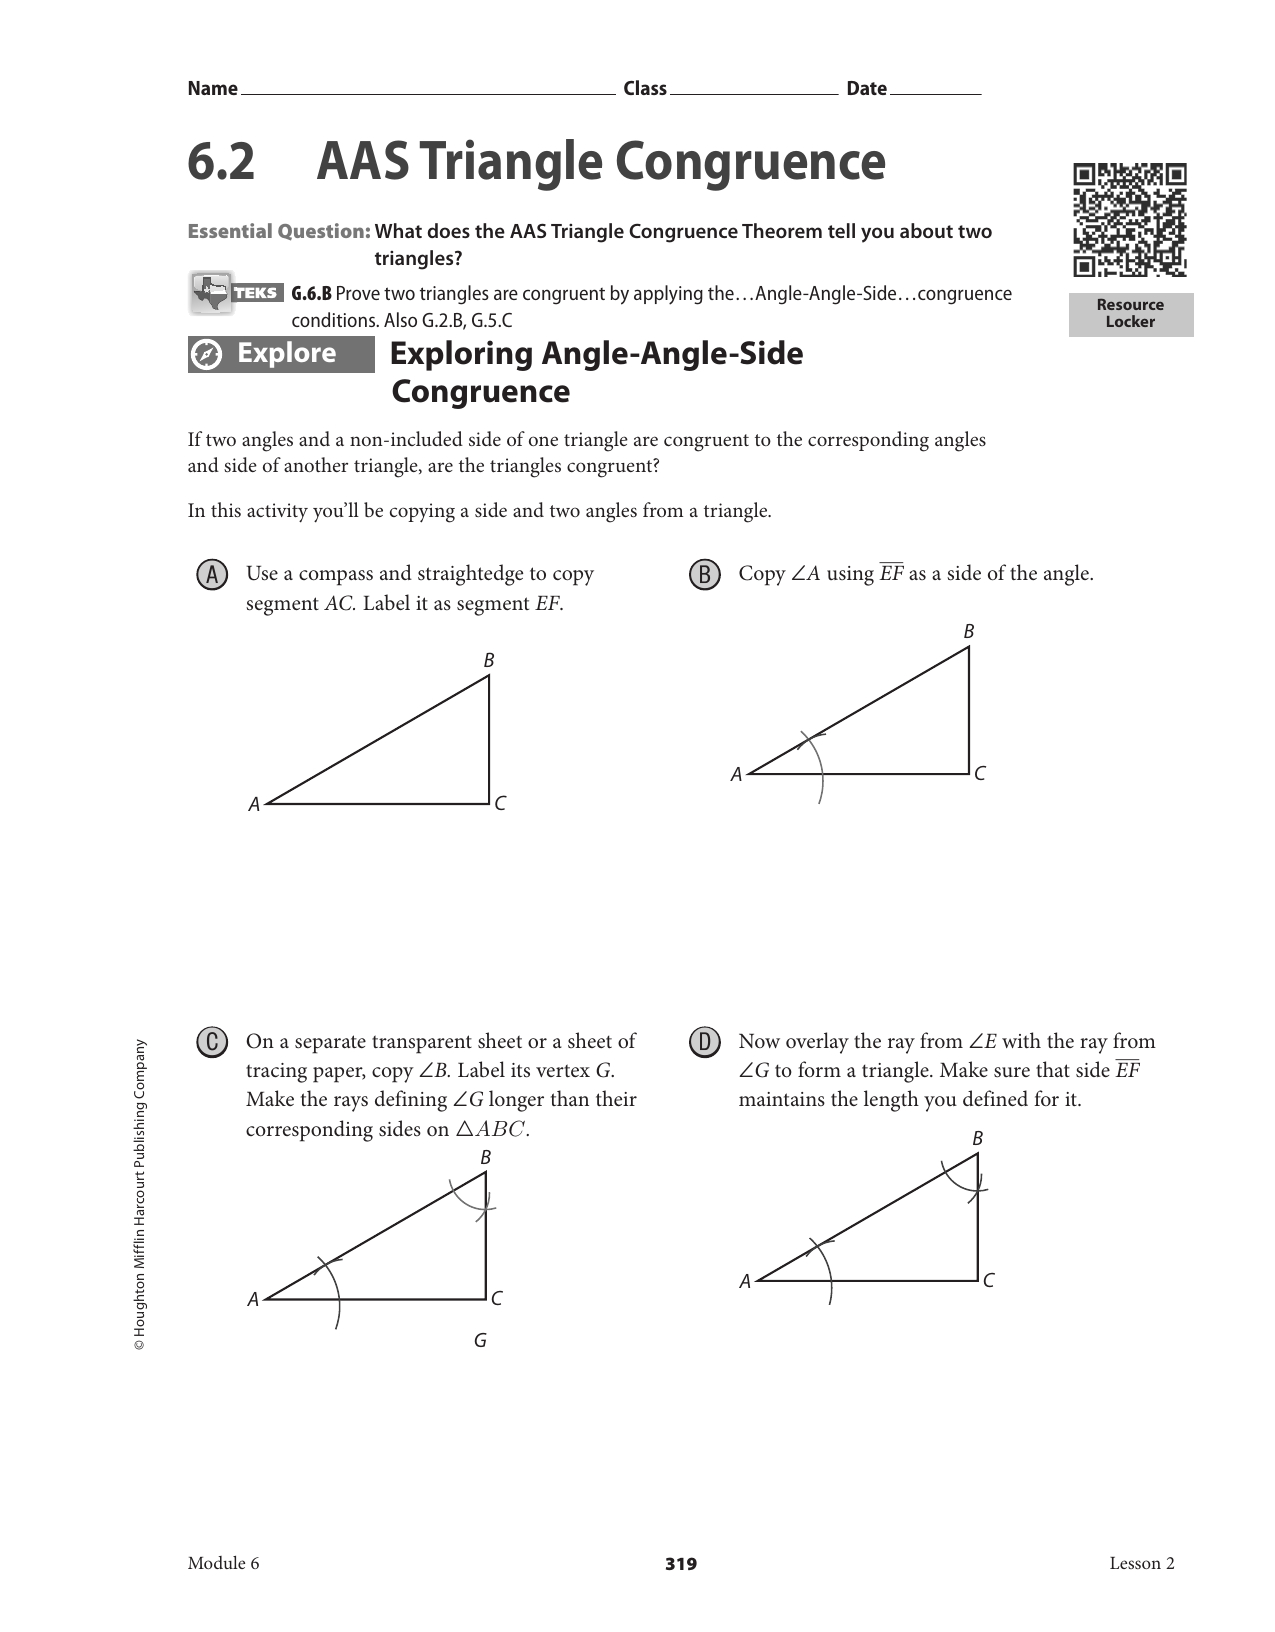 Congruent Triangles Worksheet Aas Hl Printable Worksheets And Activities For Teachers Parents Tutors And Homeschool Families